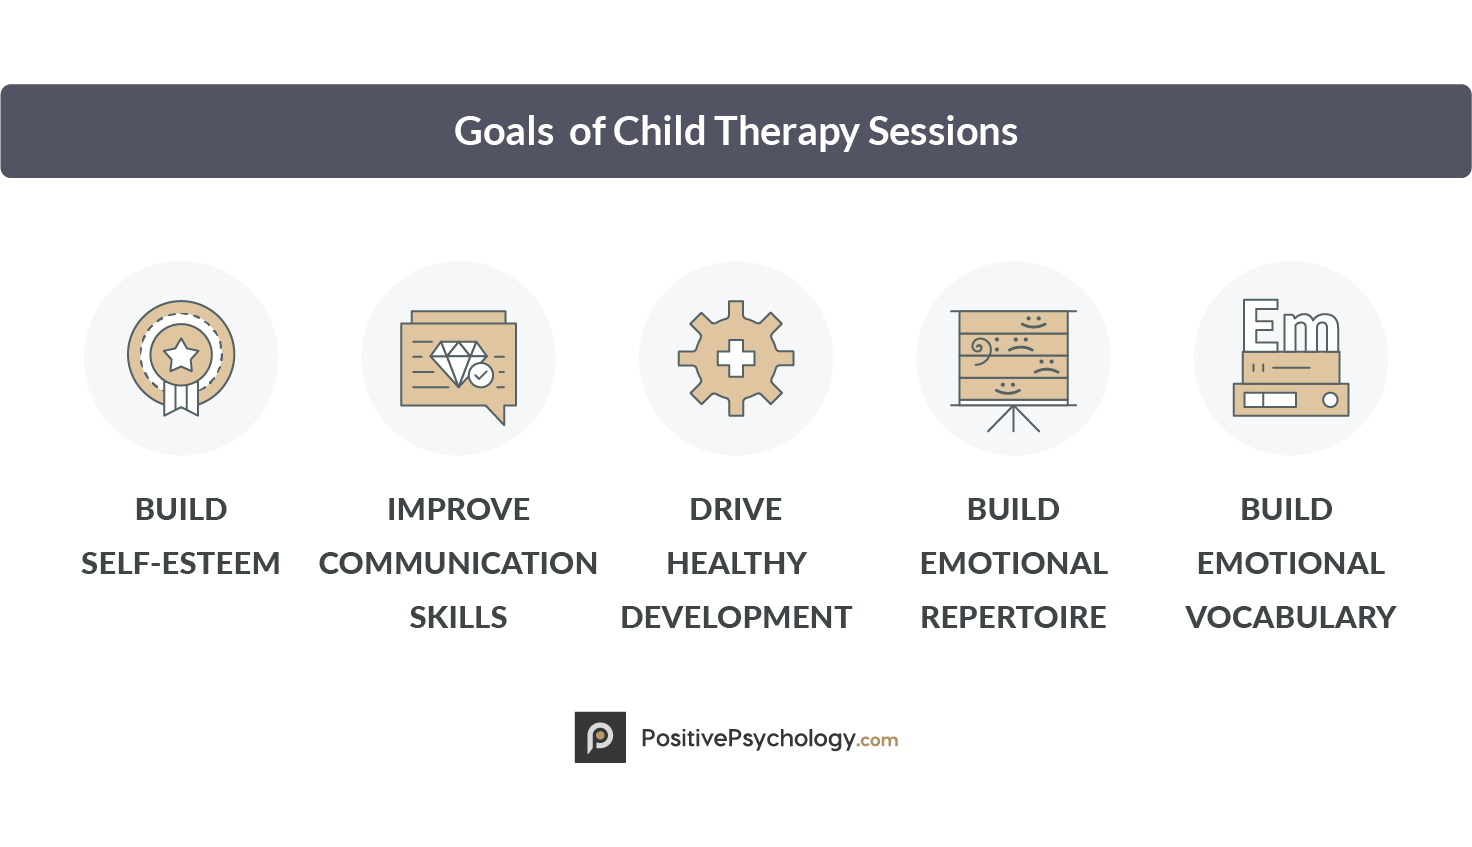 Goals of Child Therapy Sessions